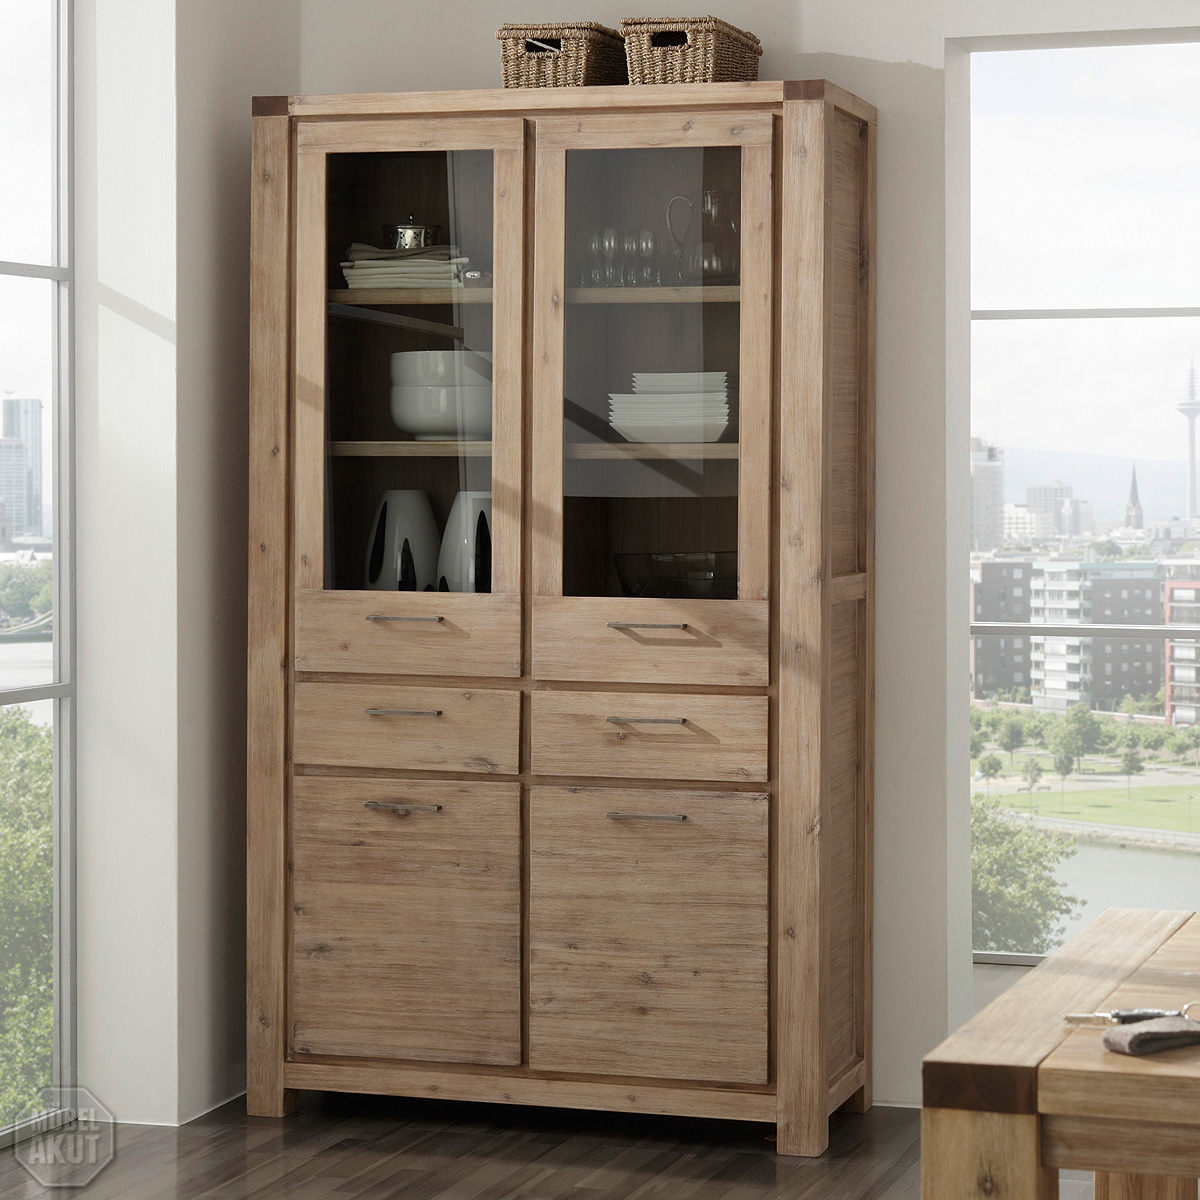 kleiderschrank massivholz akazie bestseller shop f r m bel und einrichtungen. Black Bedroom Furniture Sets. Home Design Ideas